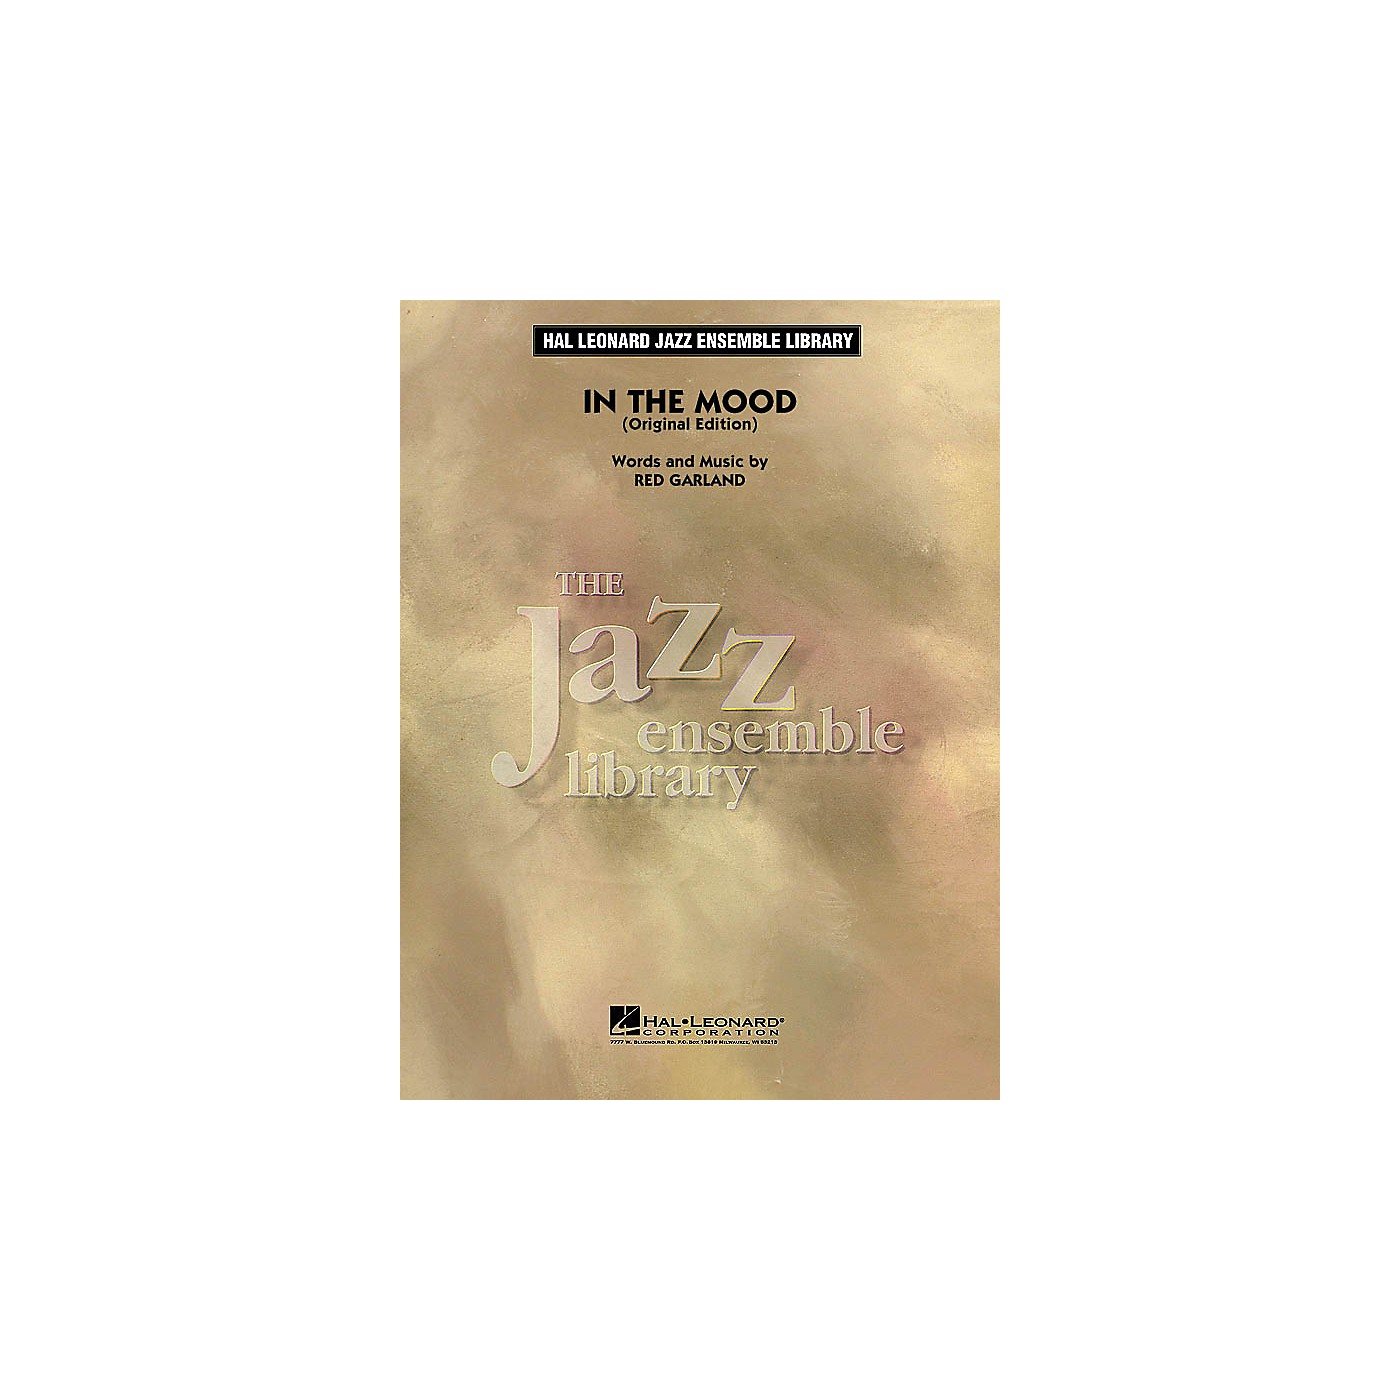 Hal Leonard In the Mood (Original Edition) Jazz Band Level 5 by Glenn Miller Composed by Joe Garland thumbnail